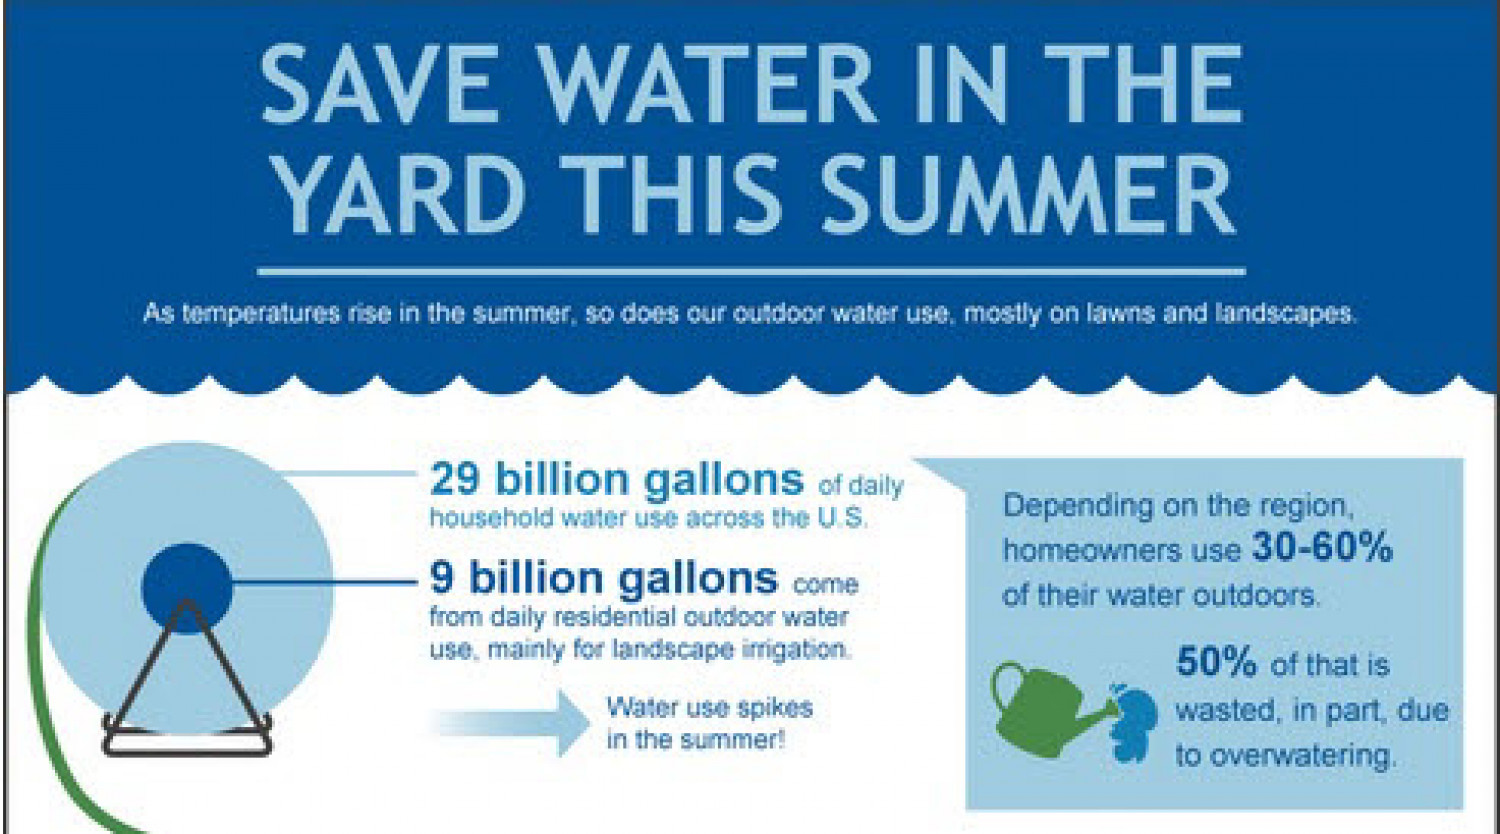 save water in the yard this summer and every summer ly save water in the yard this summer and every summer infographic